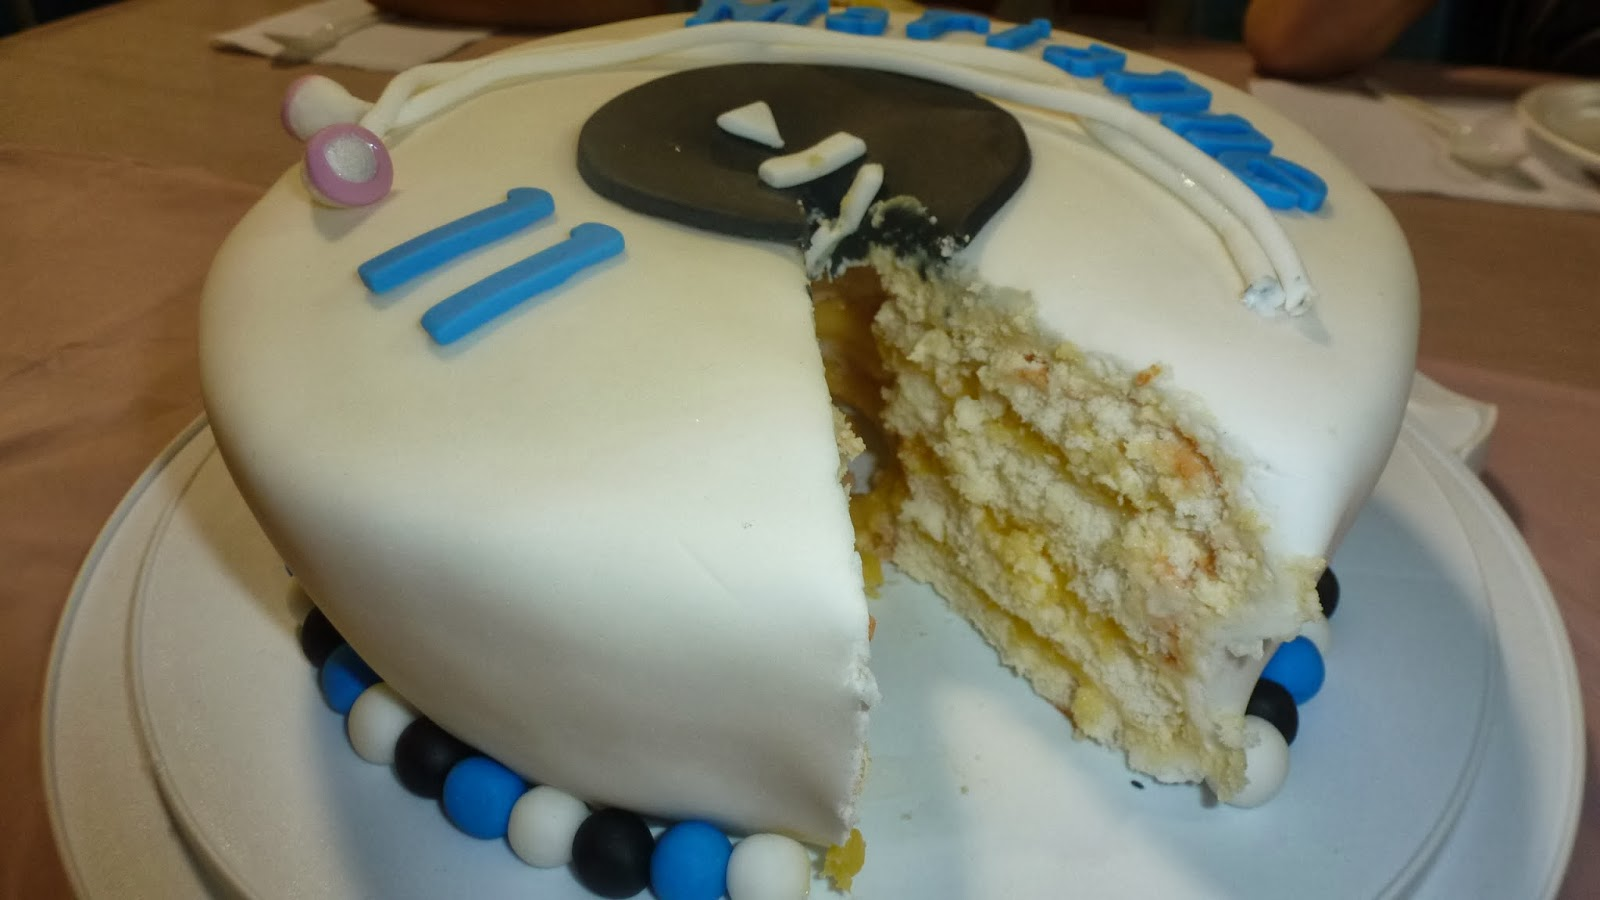 Lemon birthday cake (white angel cake)